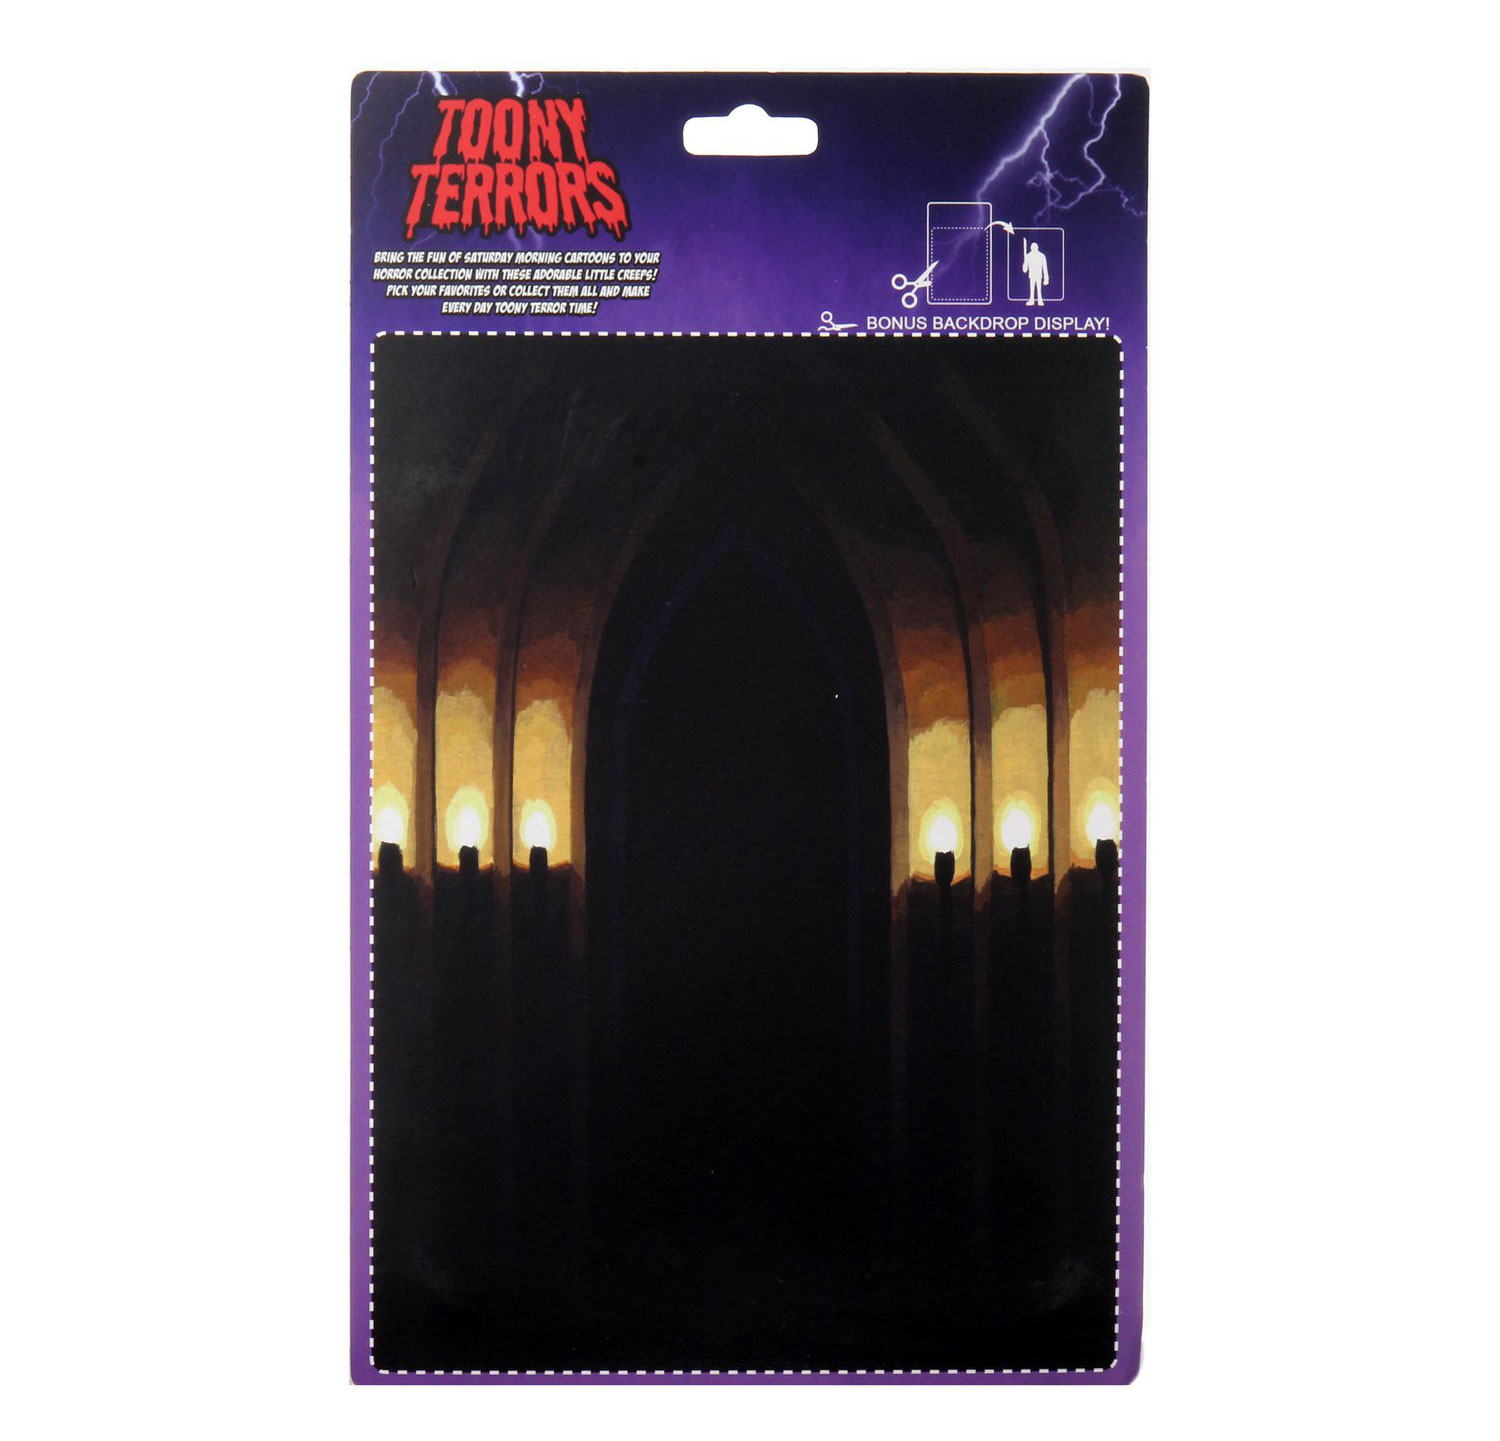 neca-toony-terrors-the-nun-action-figure-packaging-2